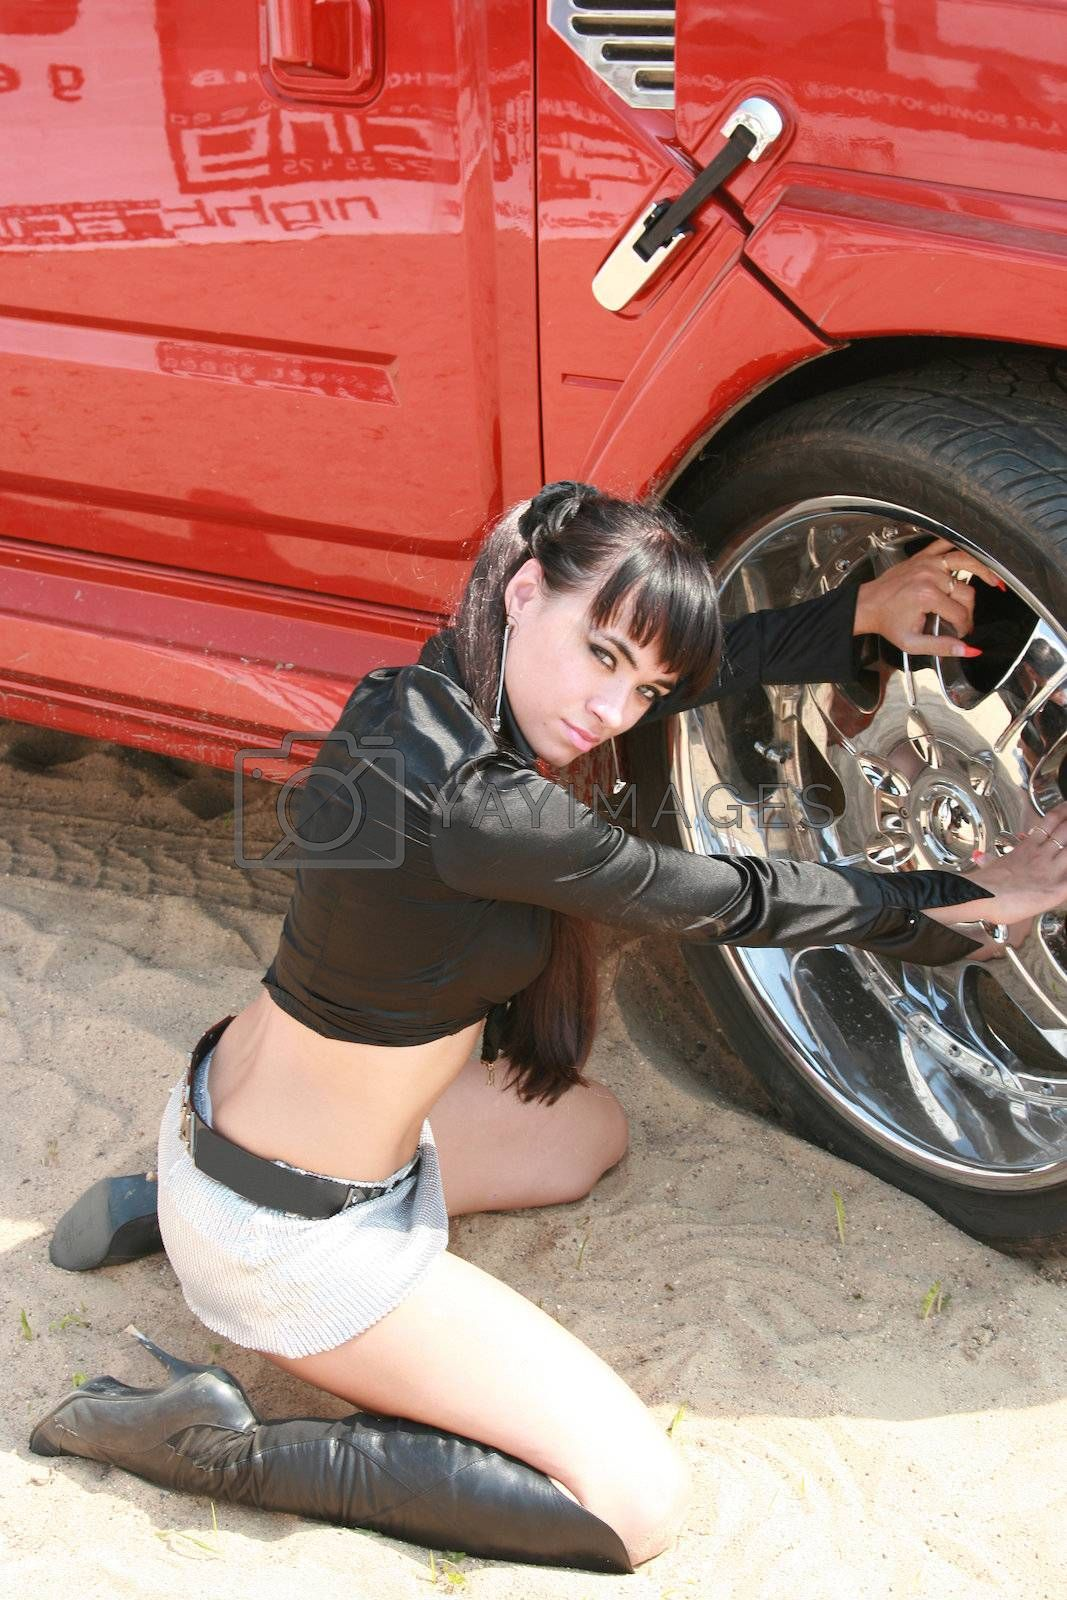 The glamour girl poses at the smart car